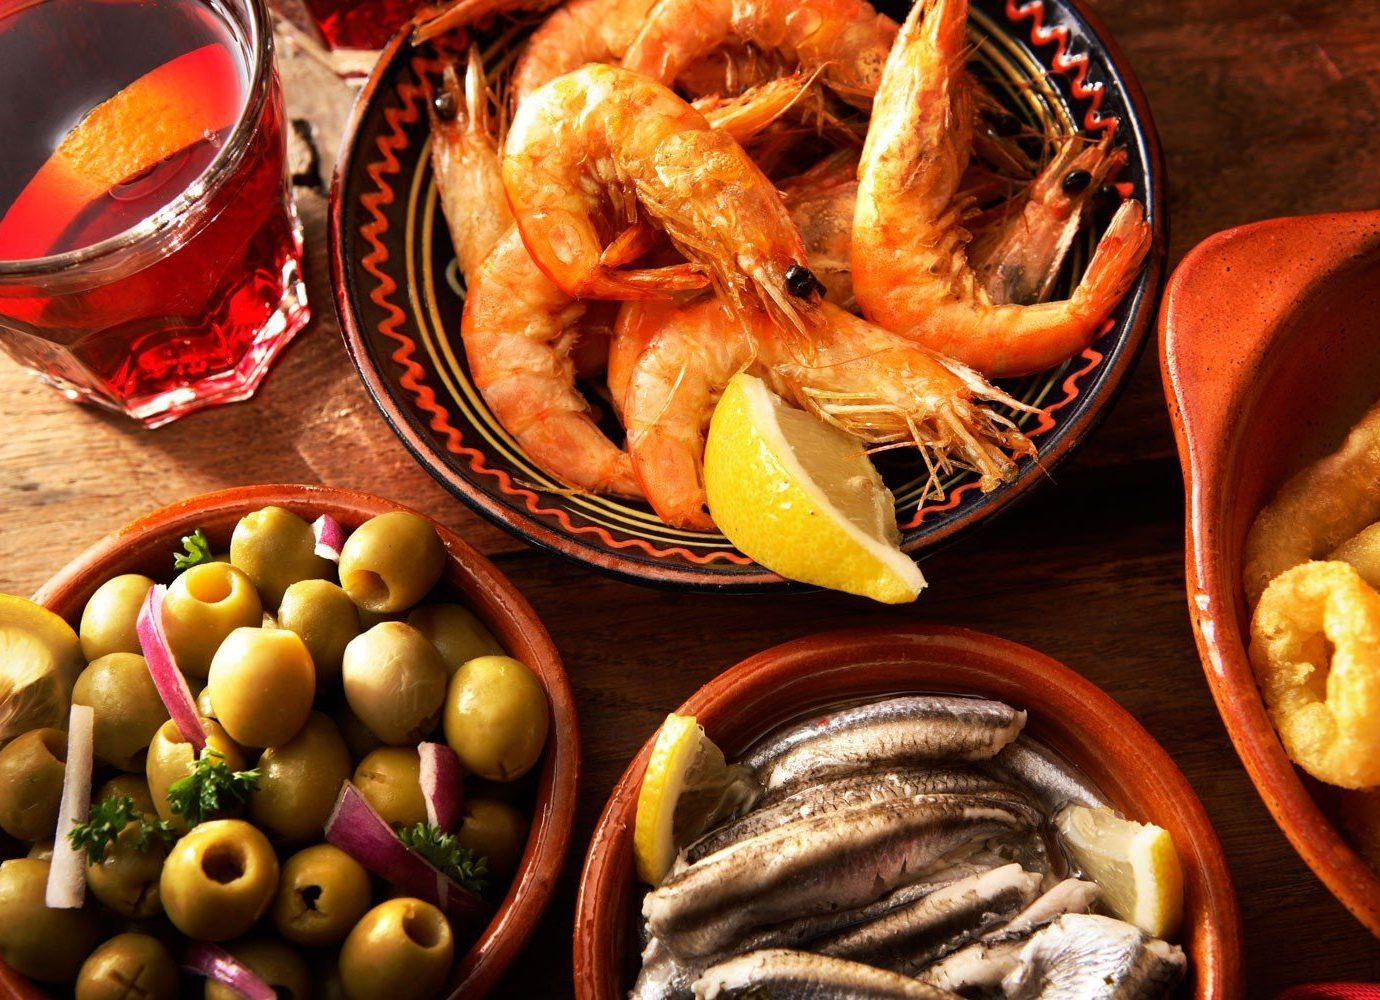 Trip Ideas food table plate dish produce cuisine Seafood seafood boil meal asian food vegetable